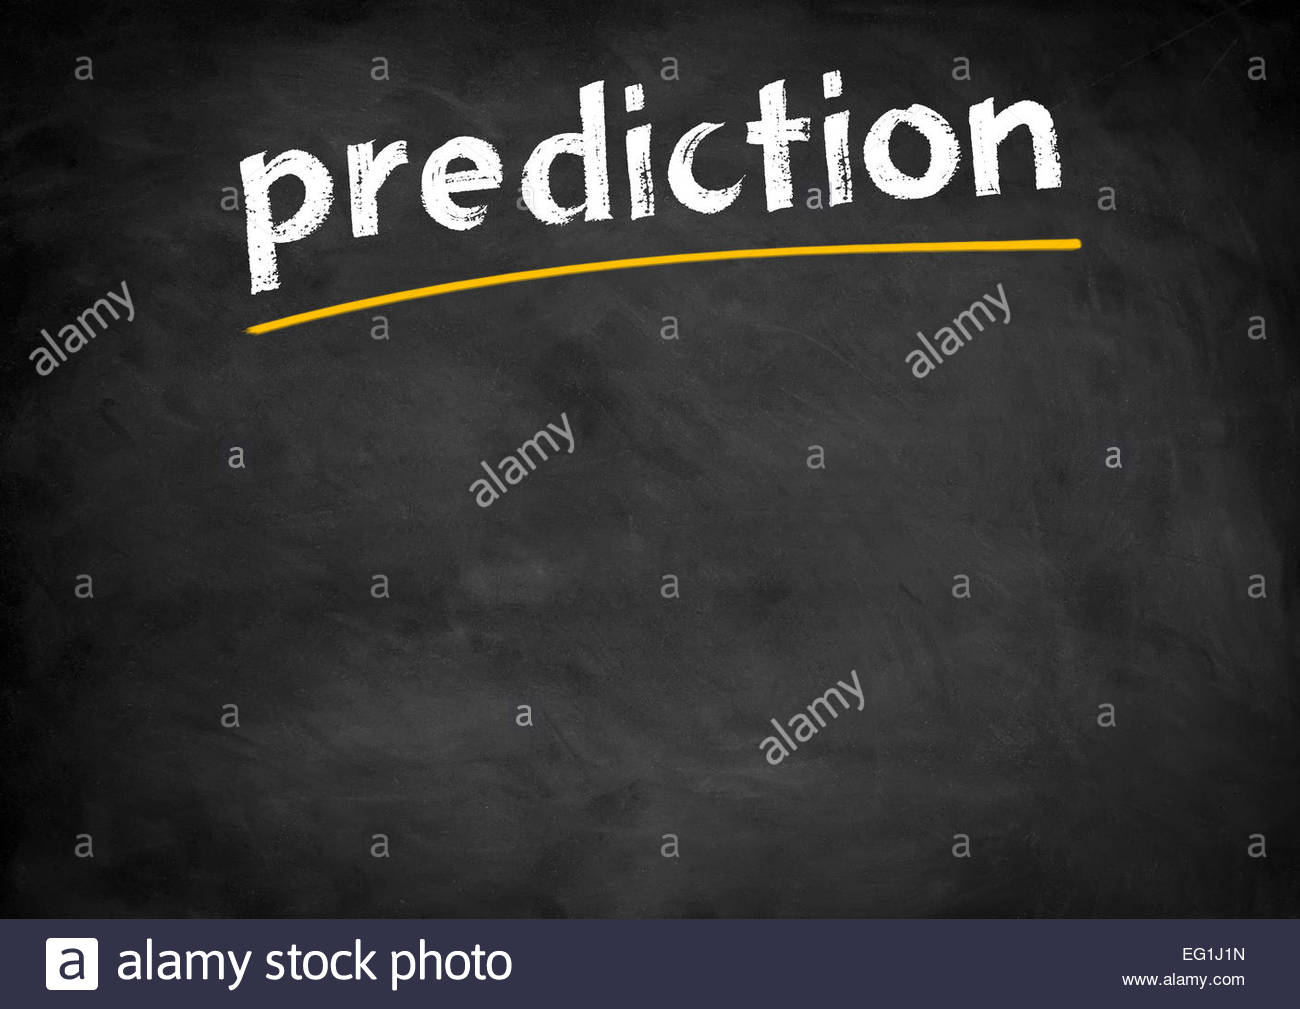 prediction chalkboard concept - Stock Image